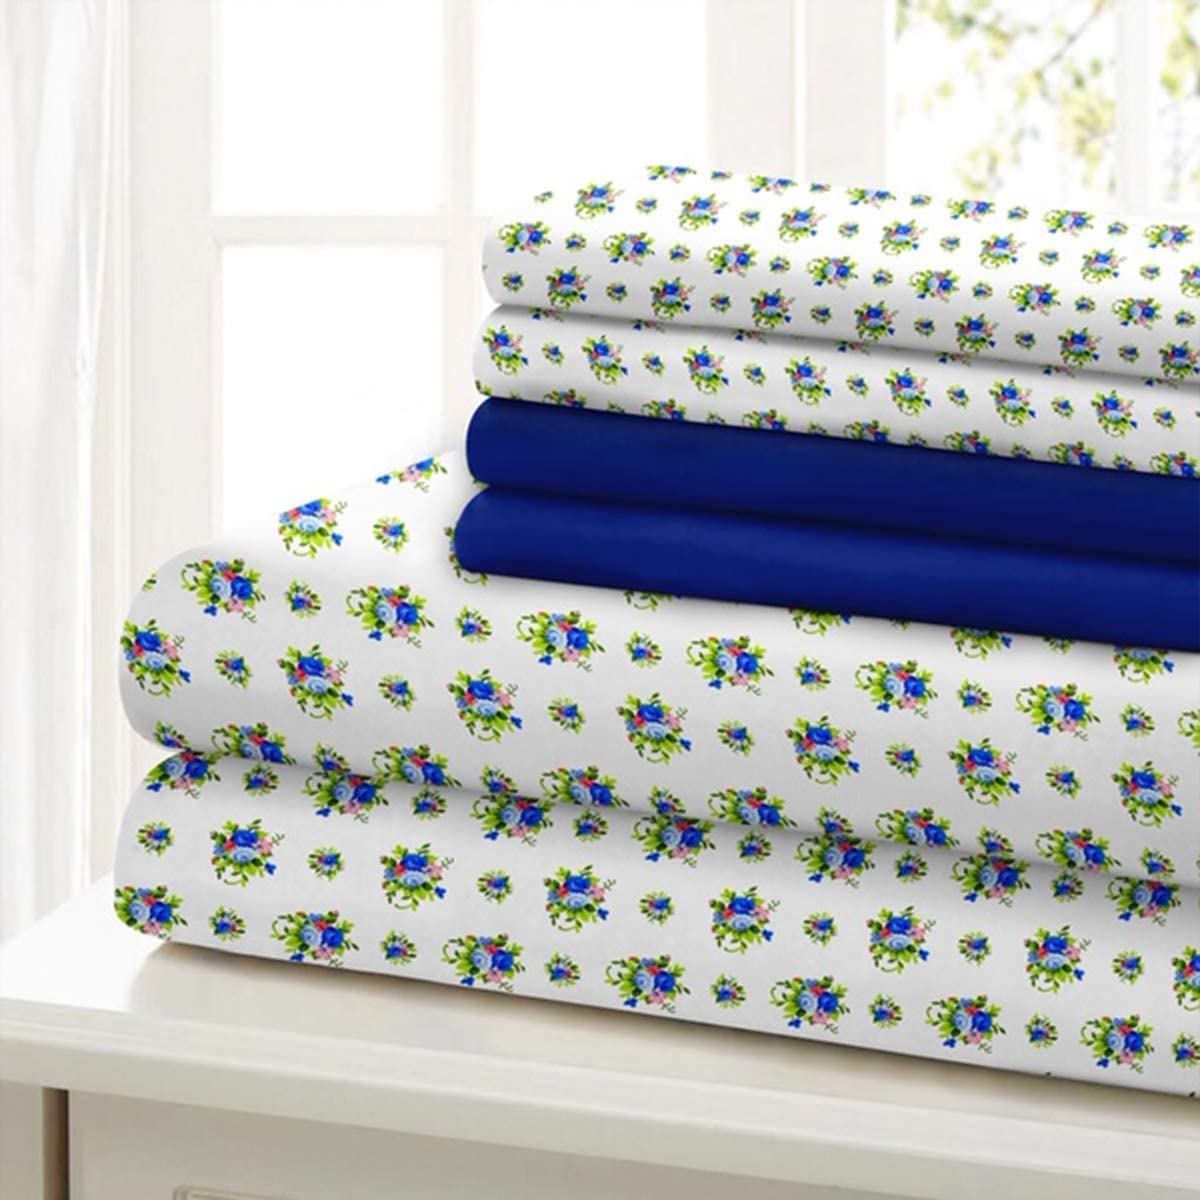 Traditional Home Sheet Set Cotton Percale 6 Piece Print Twin Full Queen King Soft (Blue Green Flower, King)